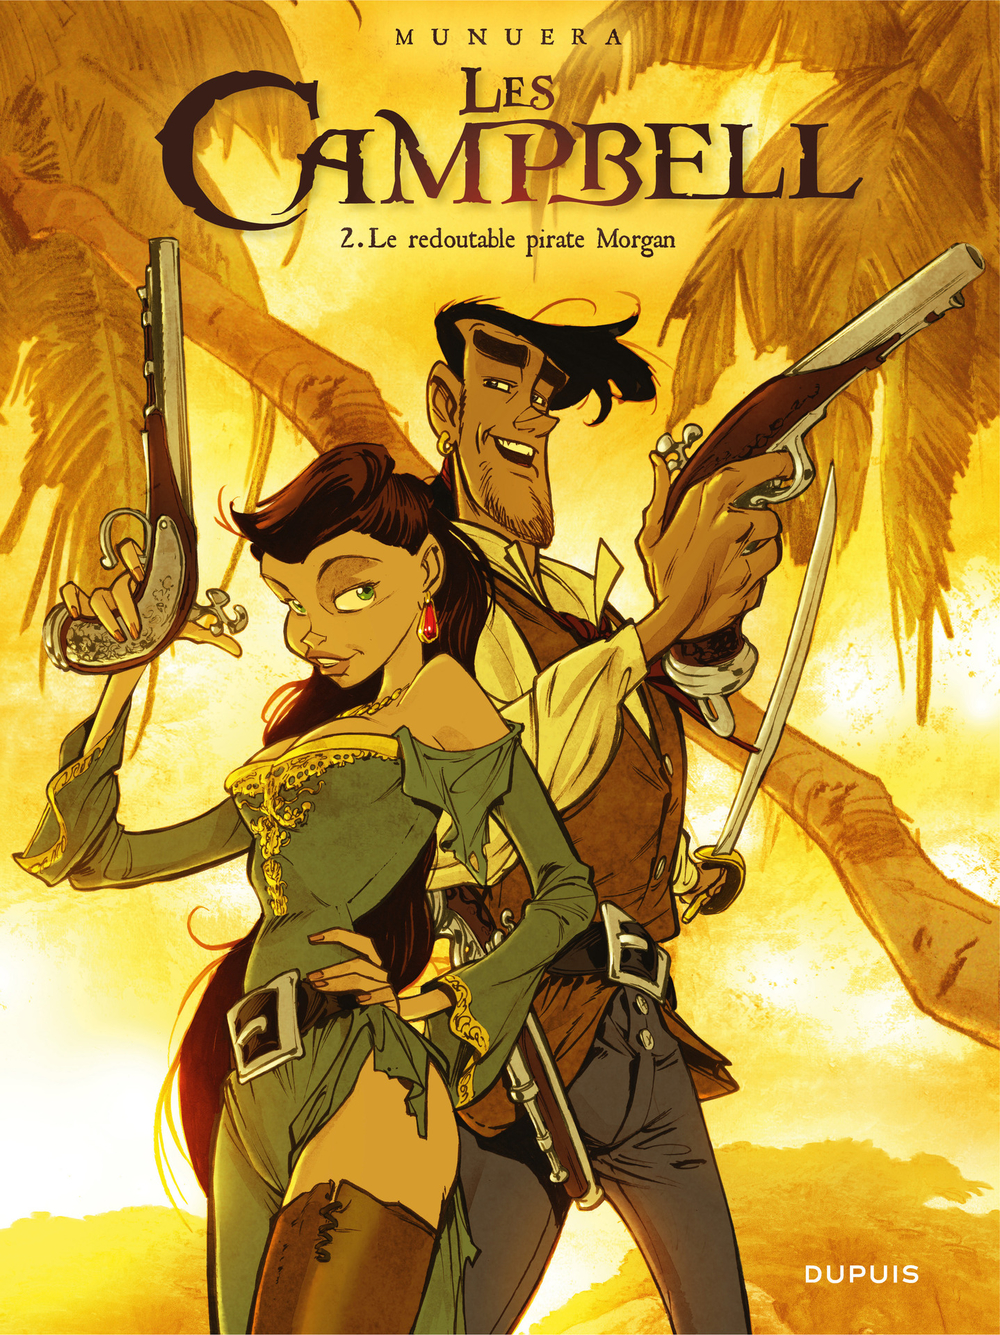 Les Campbell - Tome 2 - Le redoutable pirate Morgan |